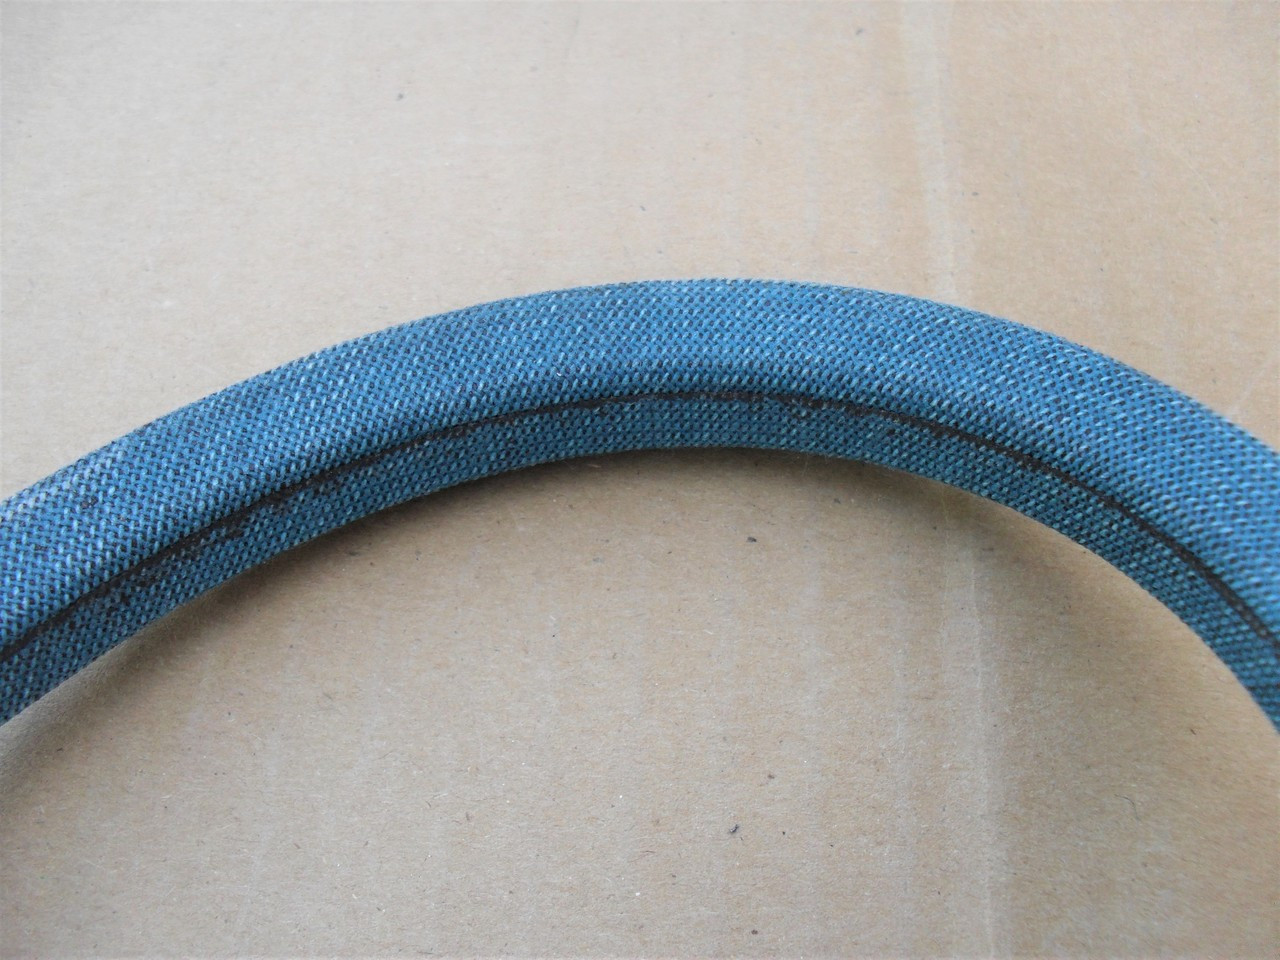 Belt for Gilson 234420 Kevlar Cord, Oil and heat resistant, Made in USA